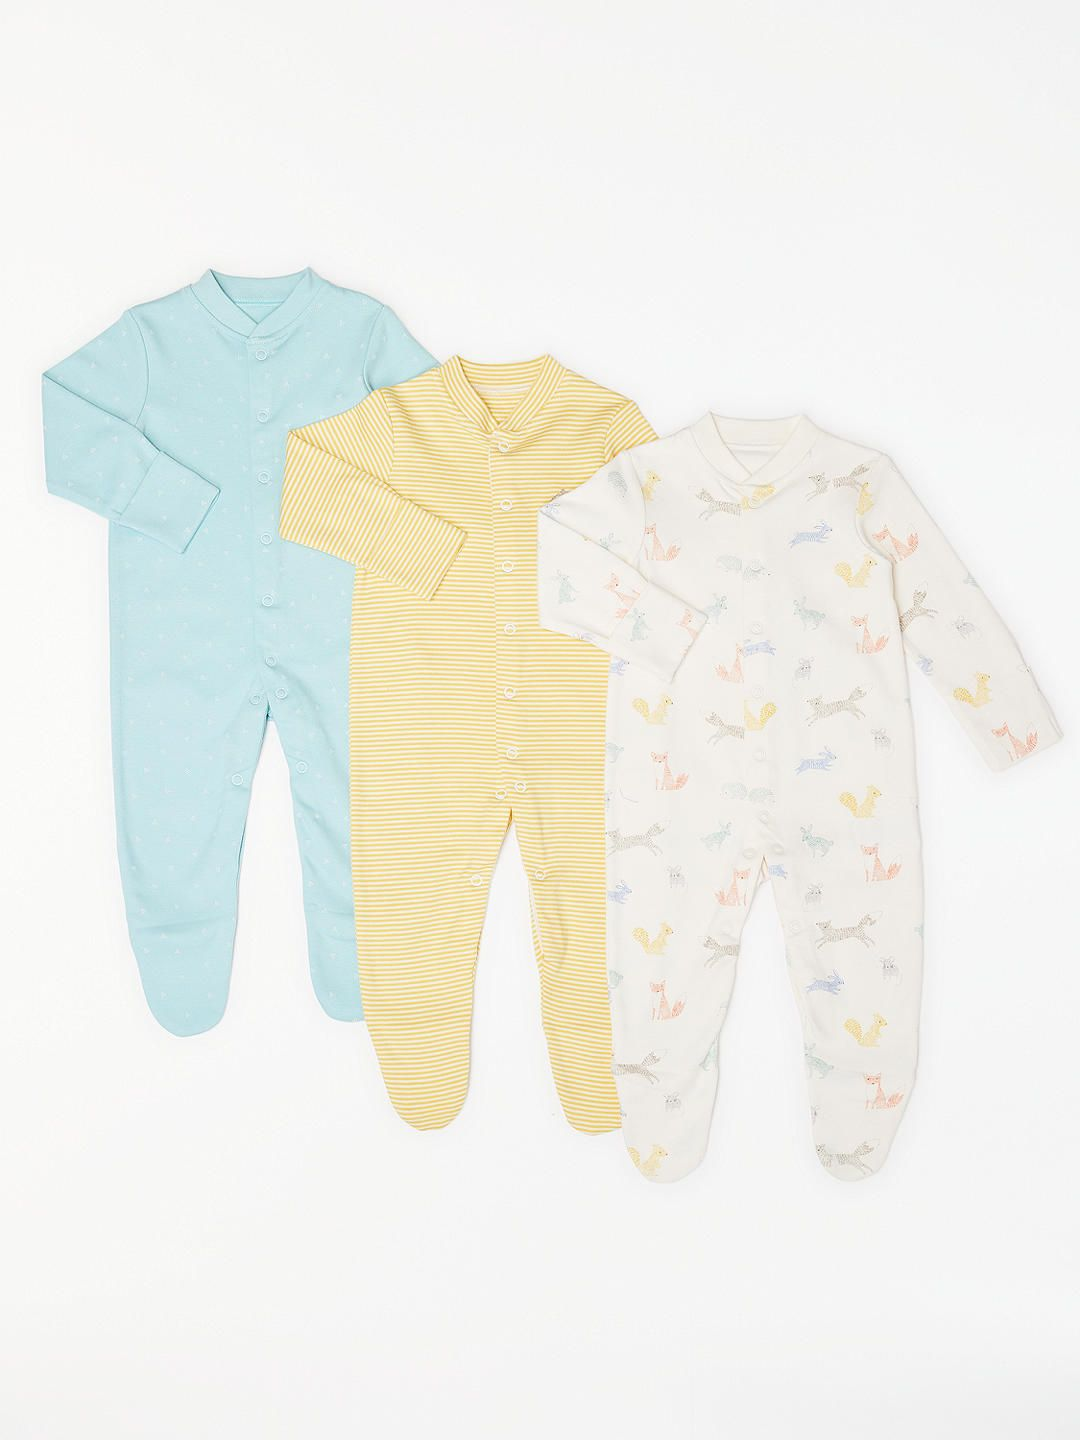 1efb2e3c59aa John Lewis   Partners Baby Forest Friends GOTS Organic Cotton ...